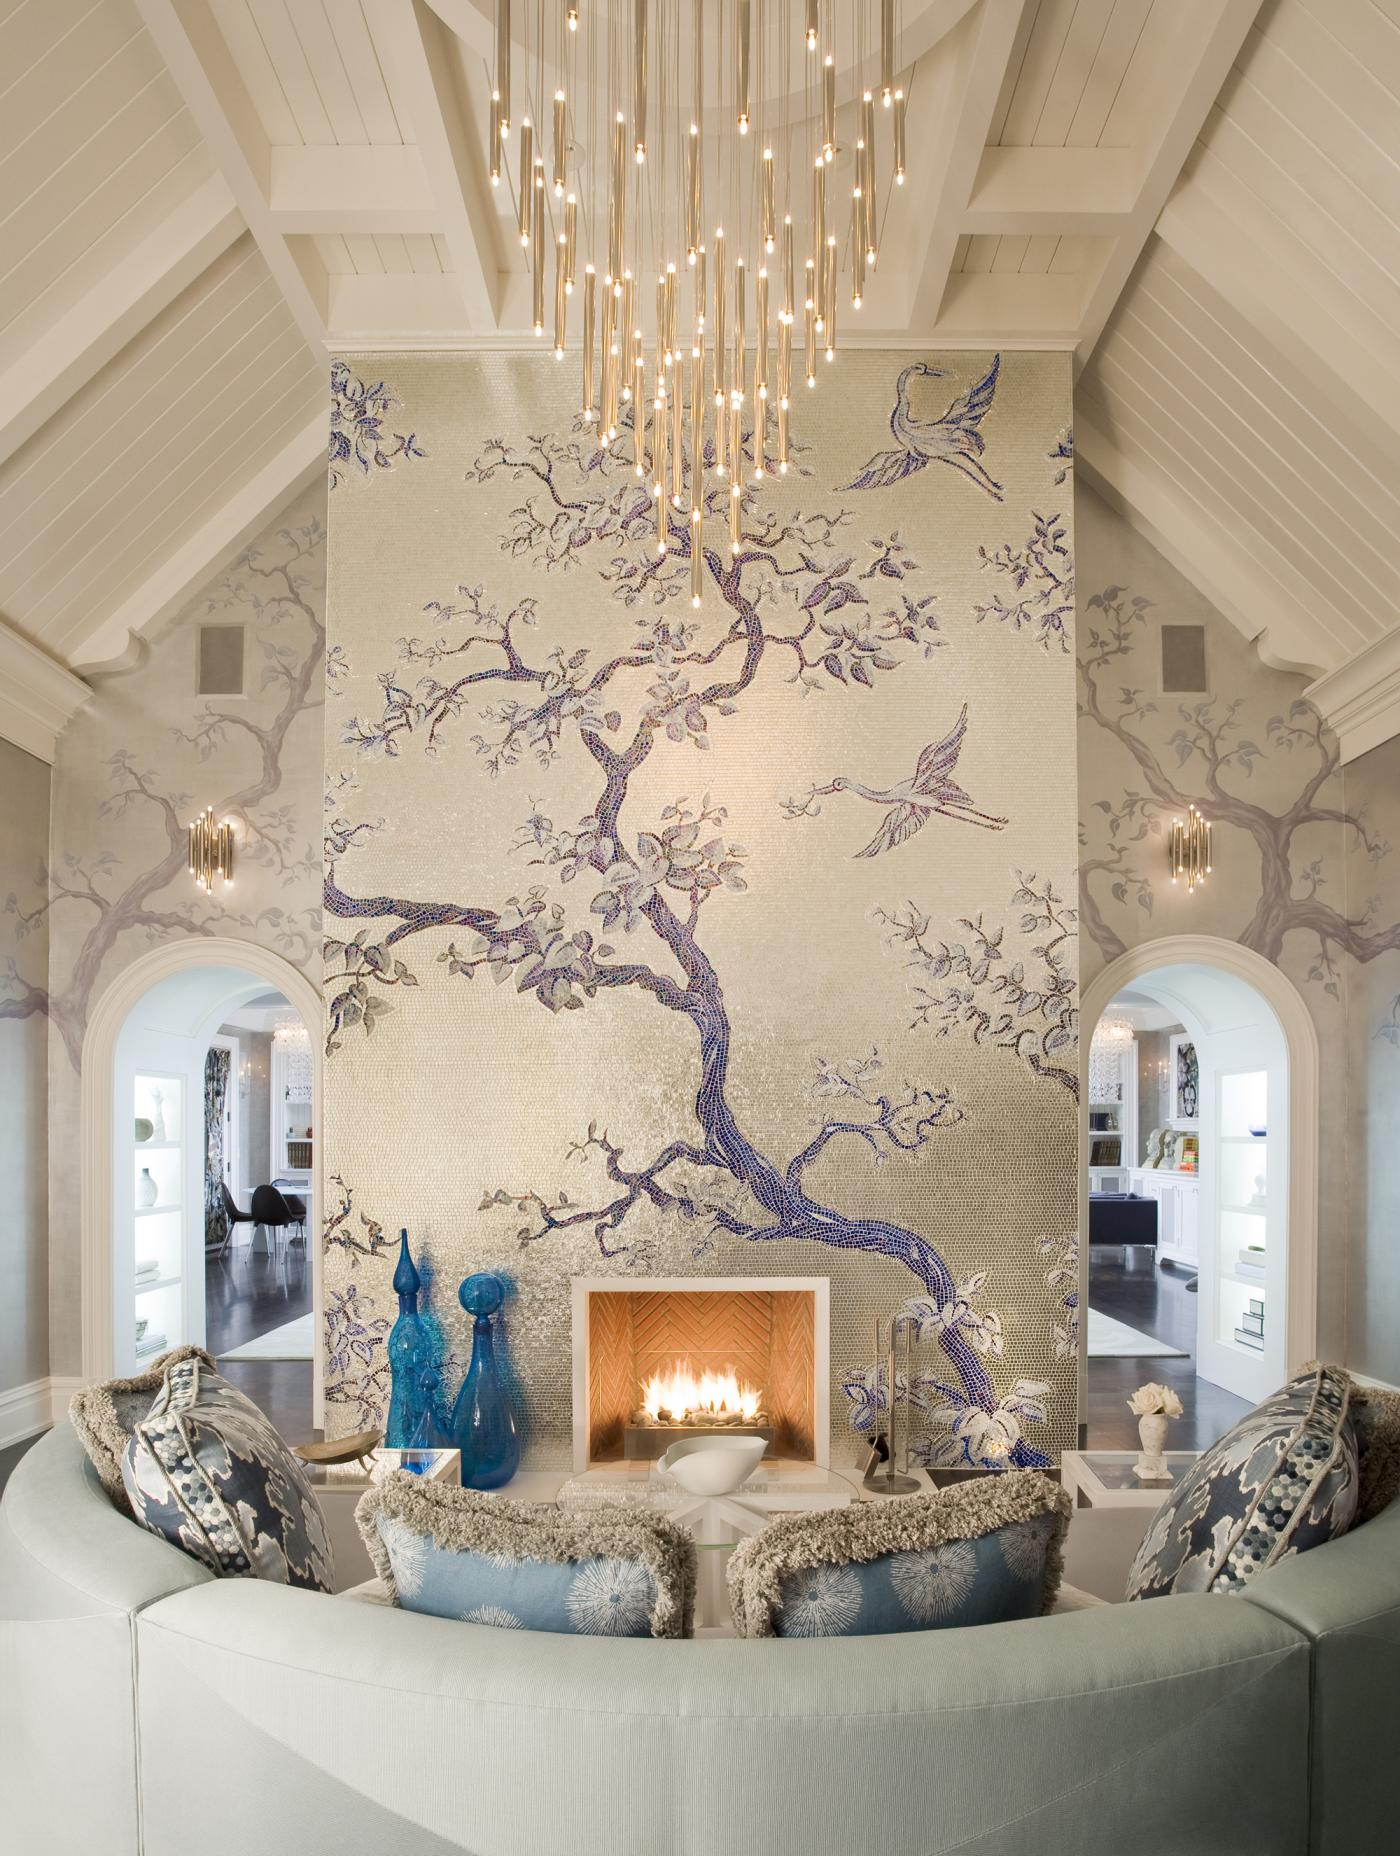 Tile and chandelier both bling in this gorgeous living room by Duan Curry